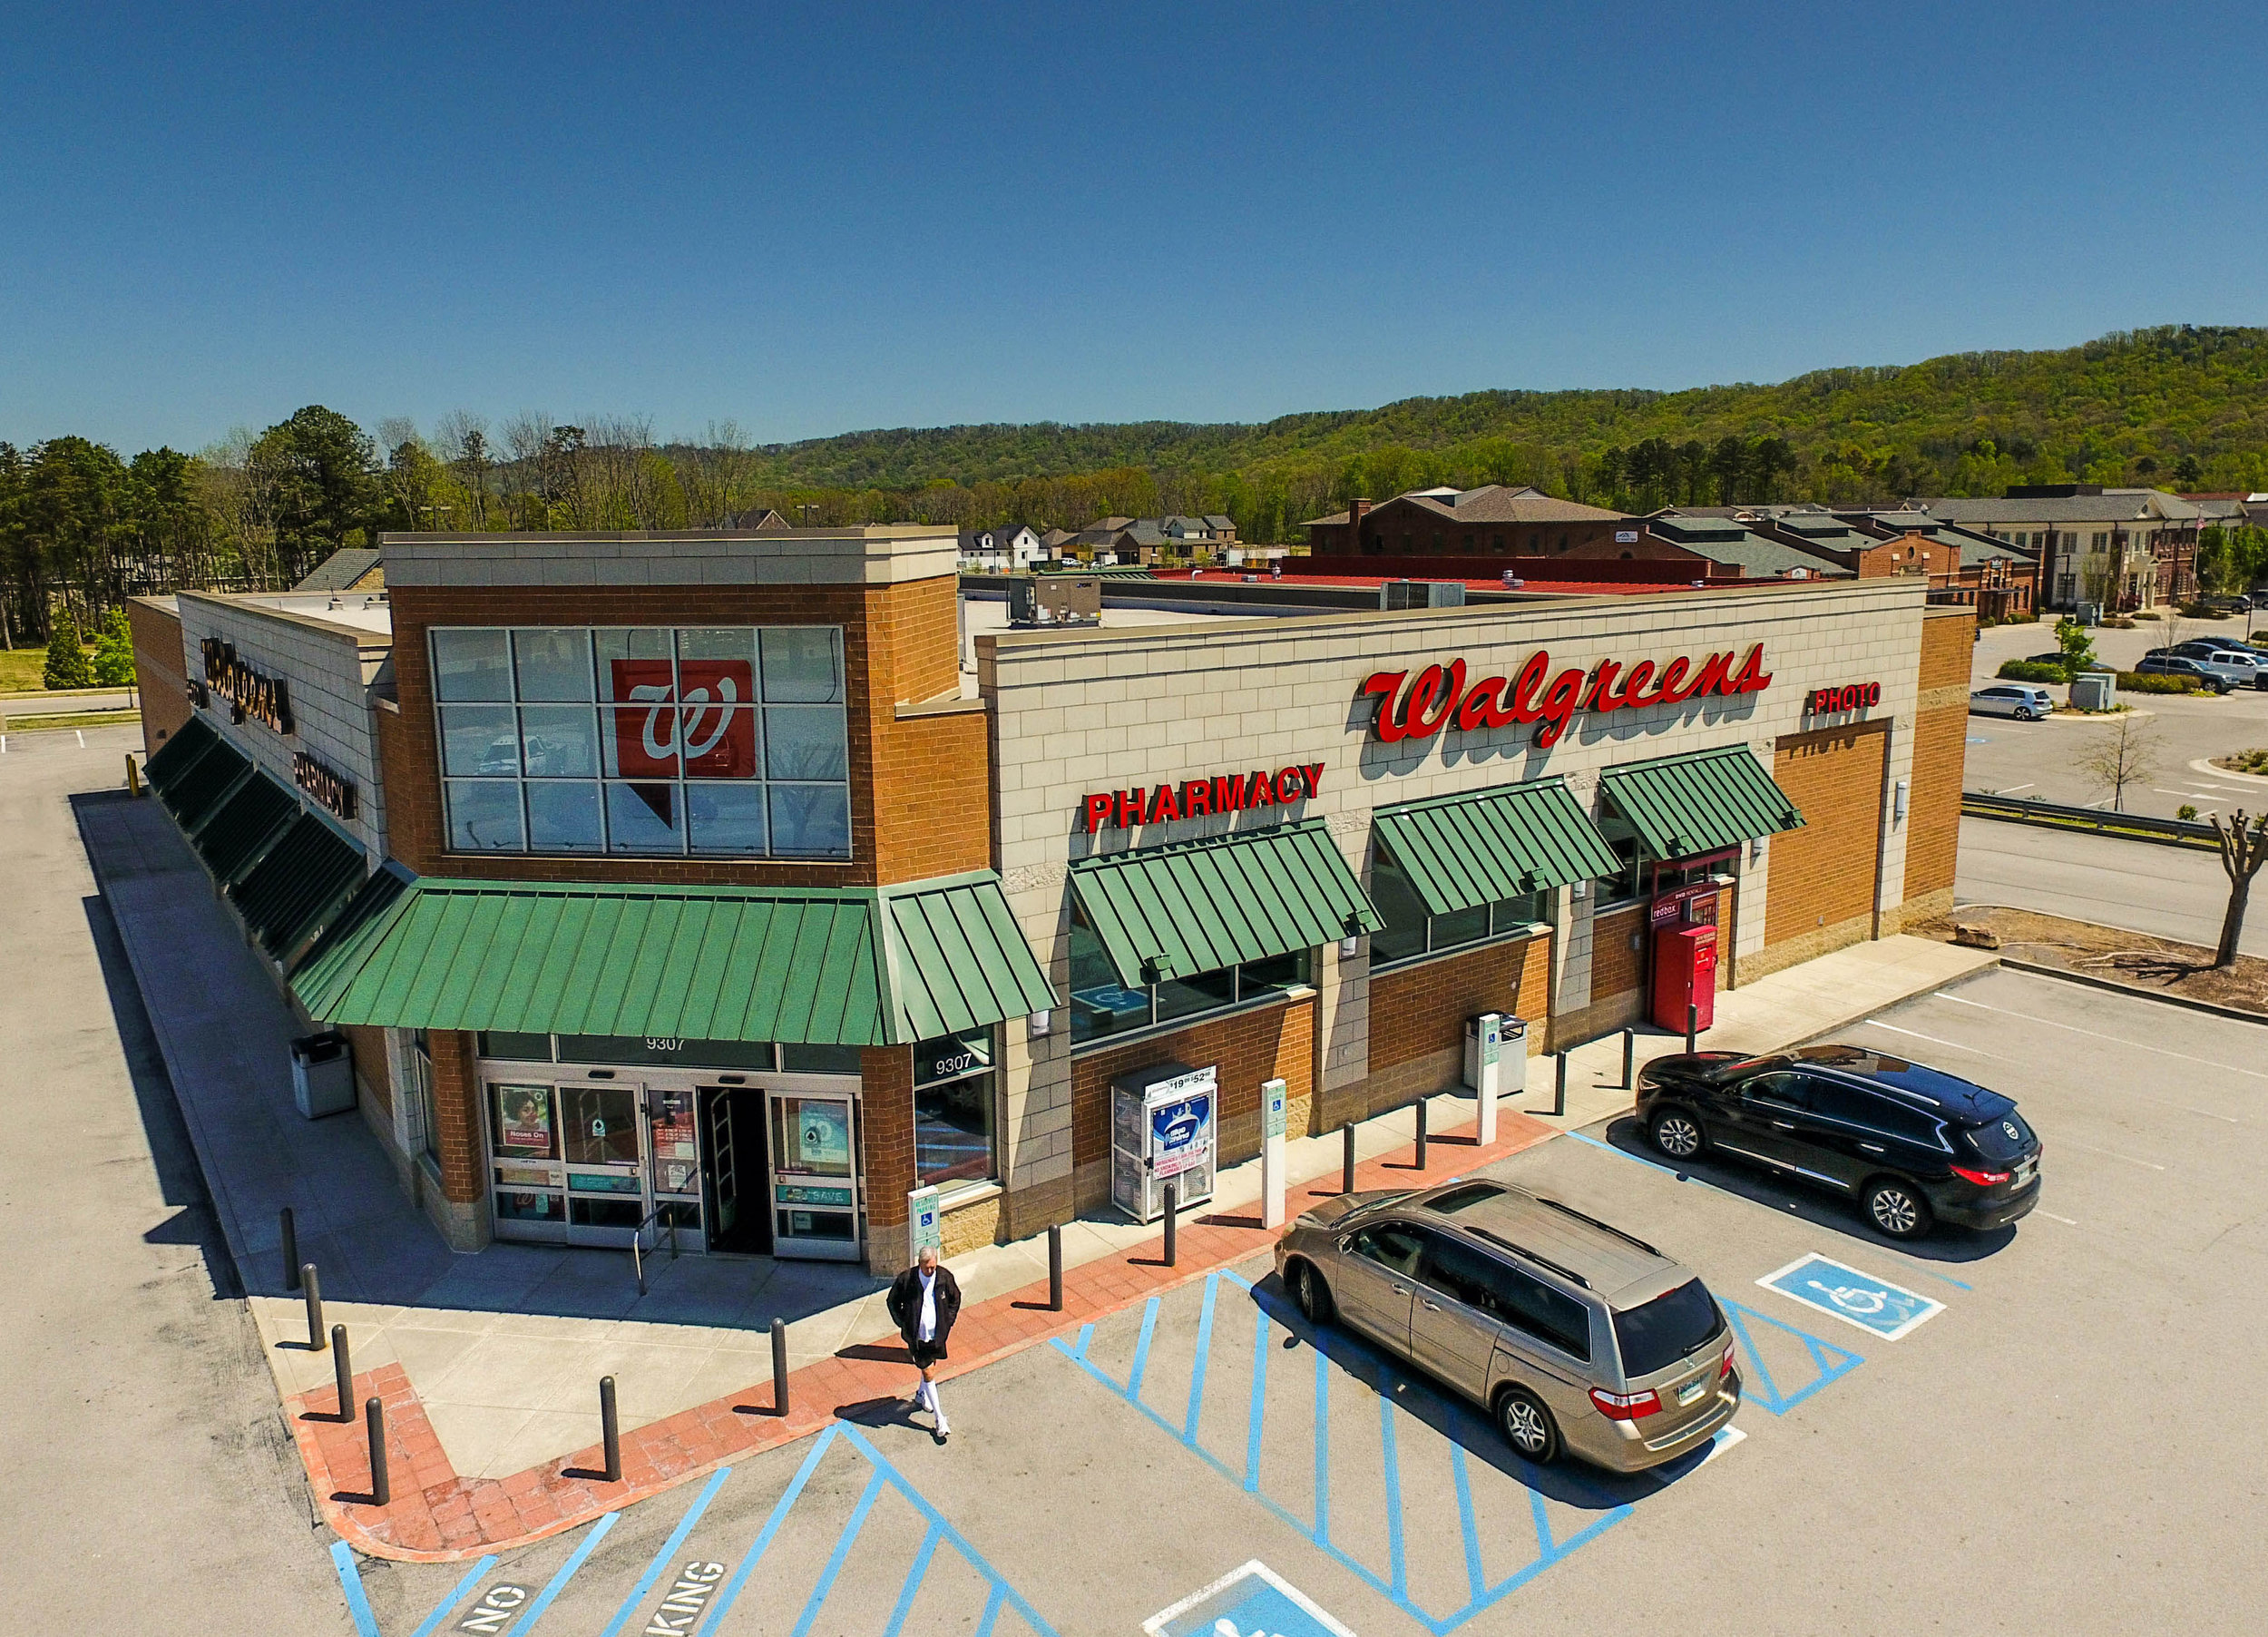 Walgreens Pharmacy - Ooltewah, TN   We completed this Walgreens in the thriving center of Ooltewah in early 2008.